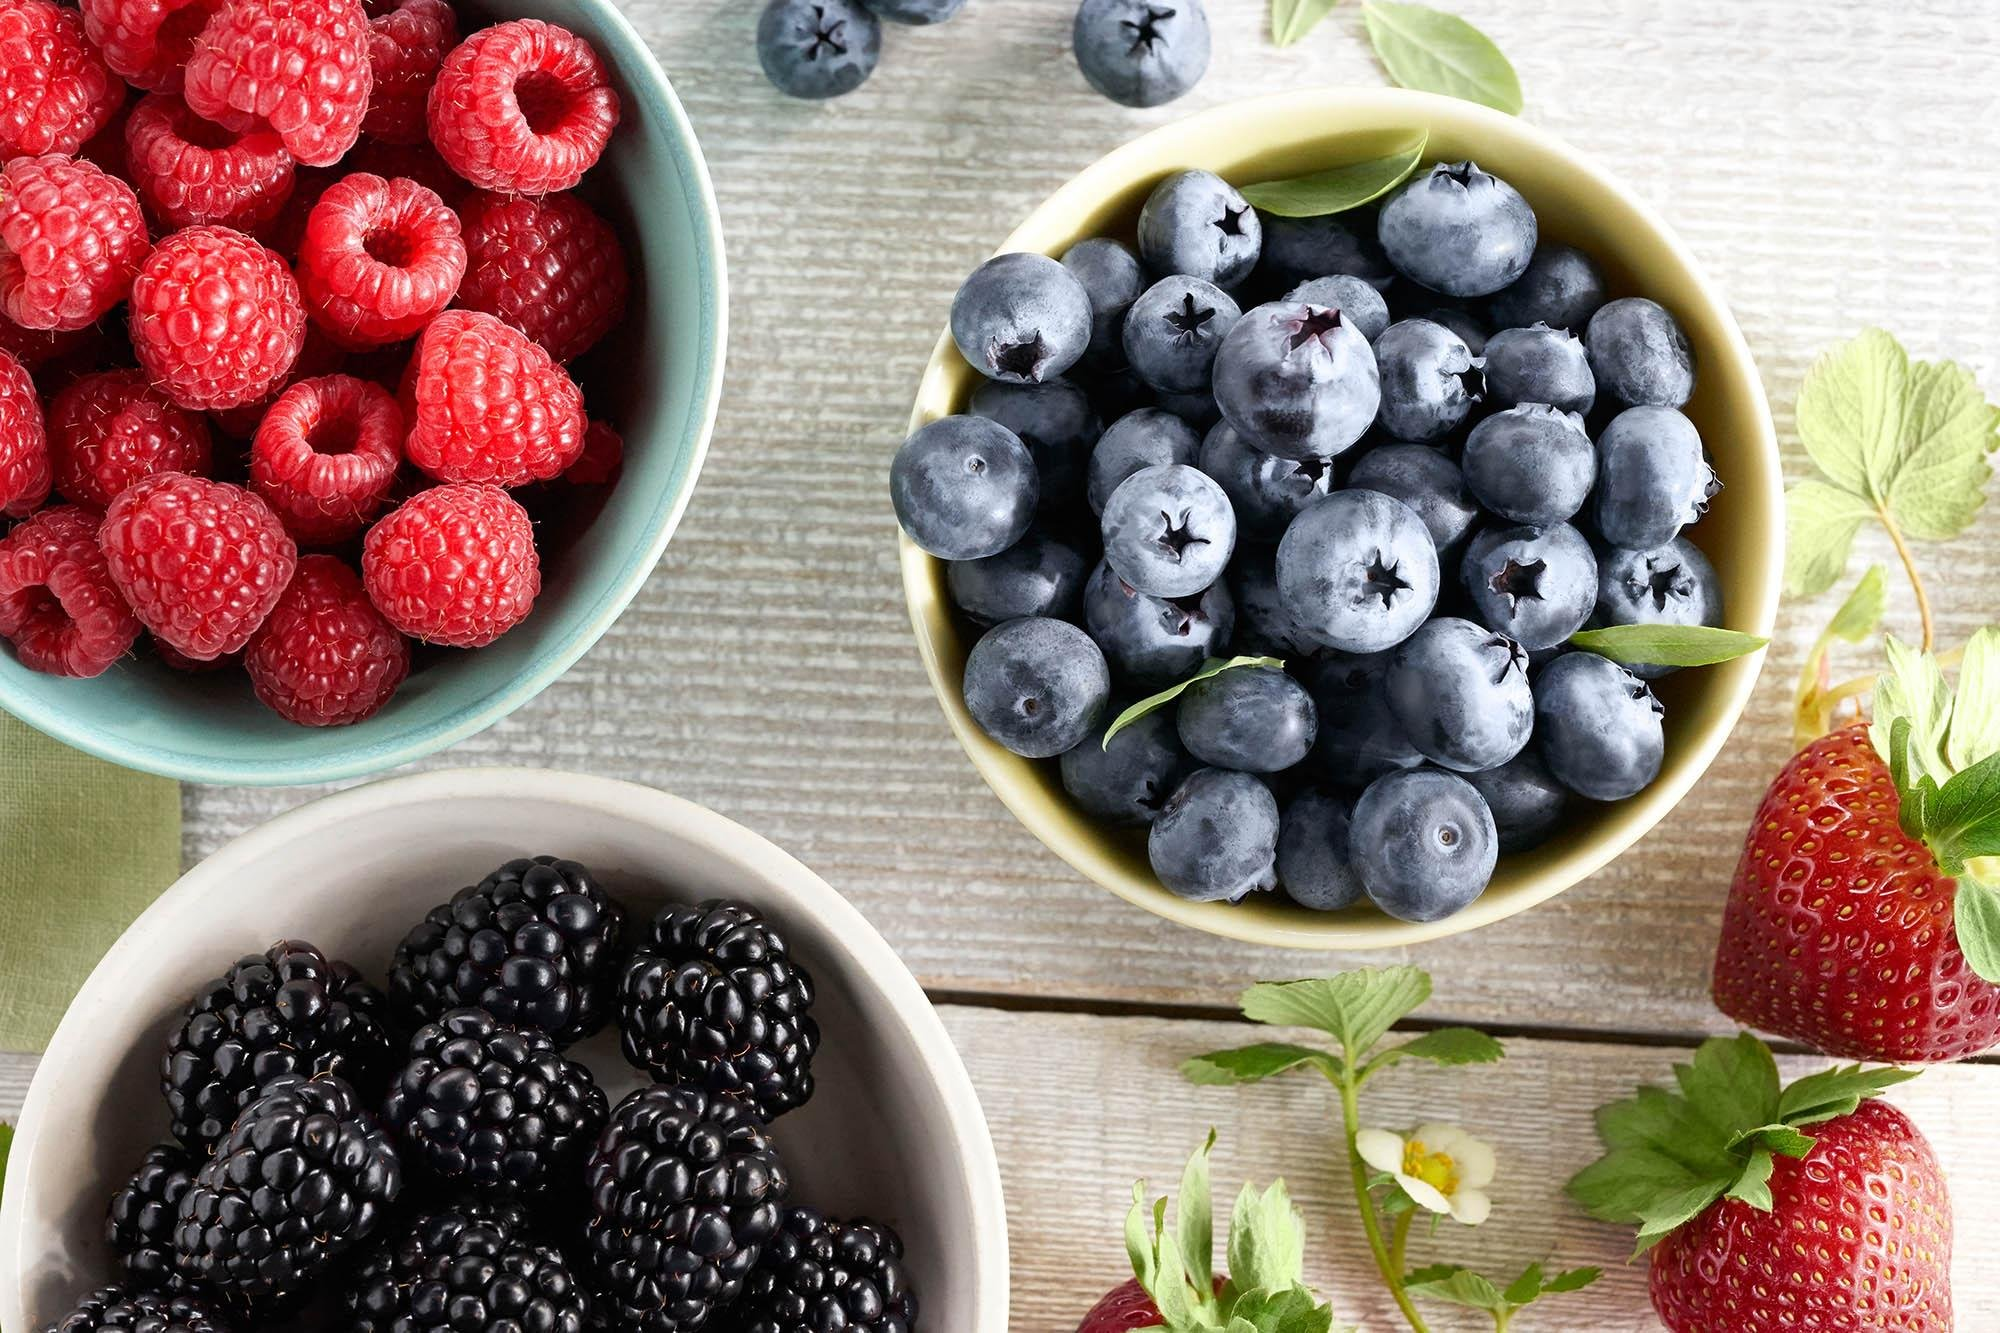 Berry Diet For Diabetes